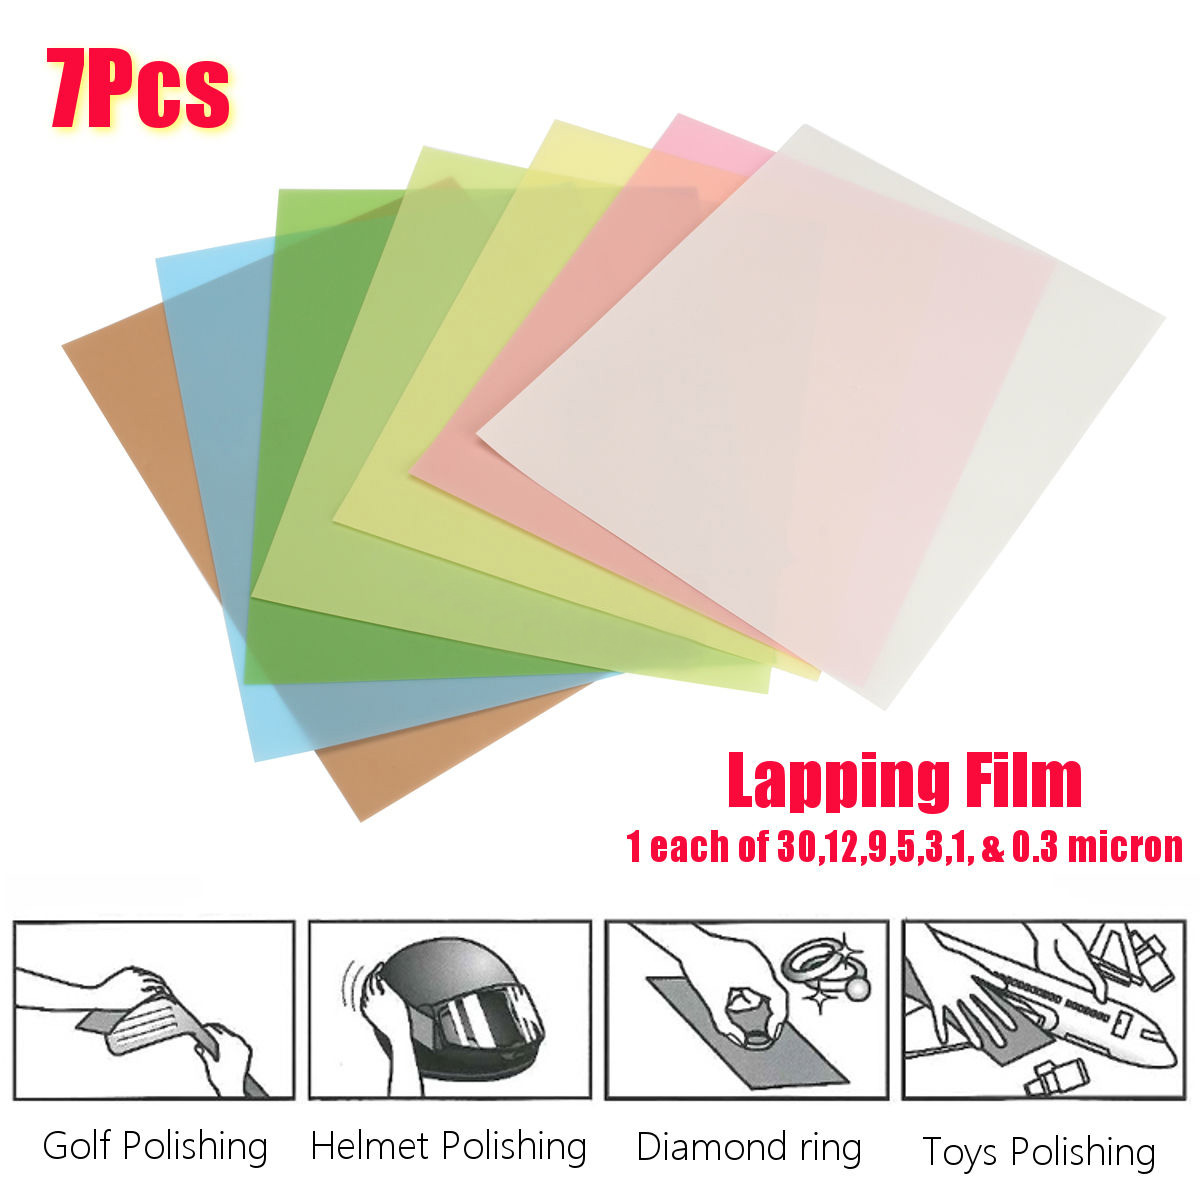 8.5x11 Microfinishing Sheet Lapping Film Assortment 30,12,9,3,1,5 0.3Micron M